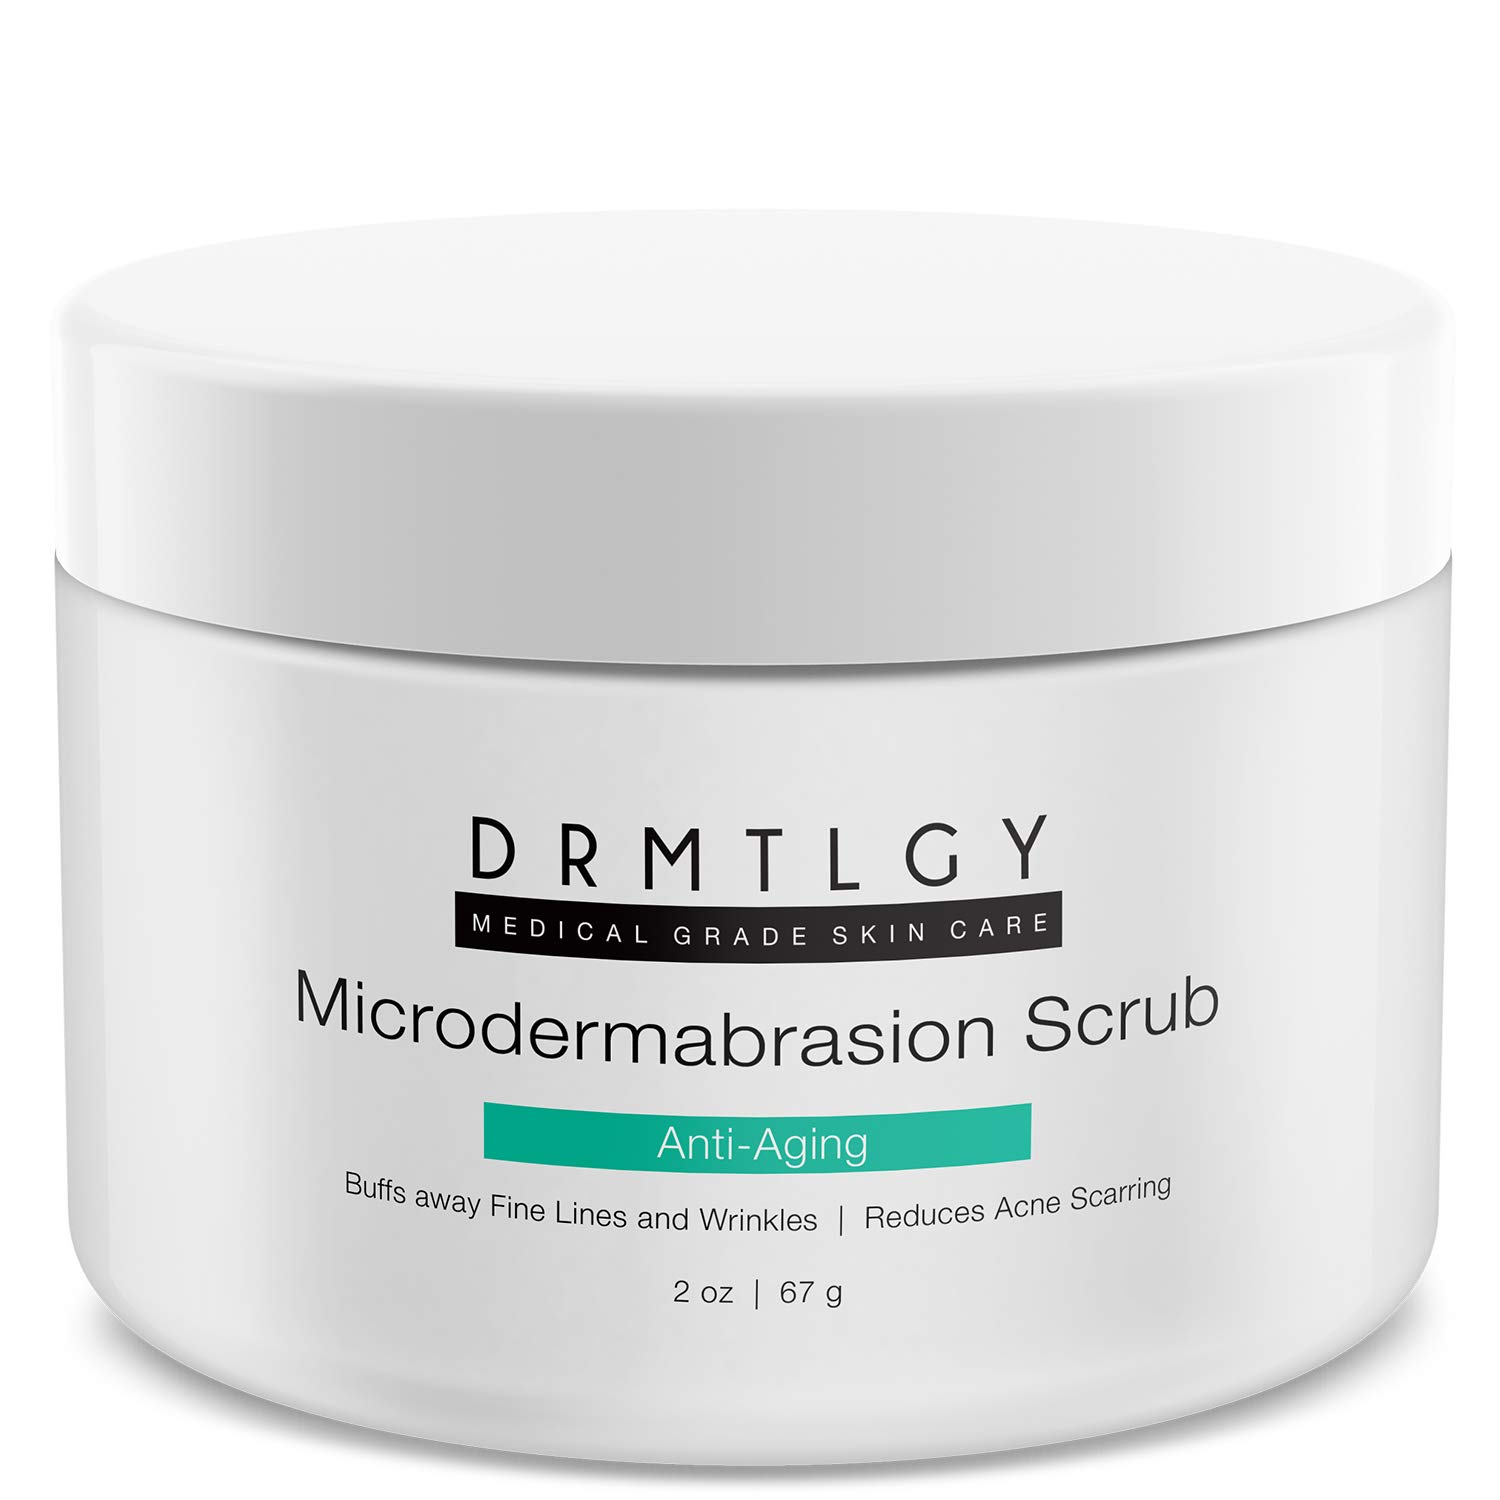 DRMTLGY Microdermabrasion Facial Scrub and Face Exfoliator. Natural Non-Abrasive Face Exfoliator Improves Acne Scars, Blackheads, Pore Size, and Skin Texture. 2 oz: Beauty